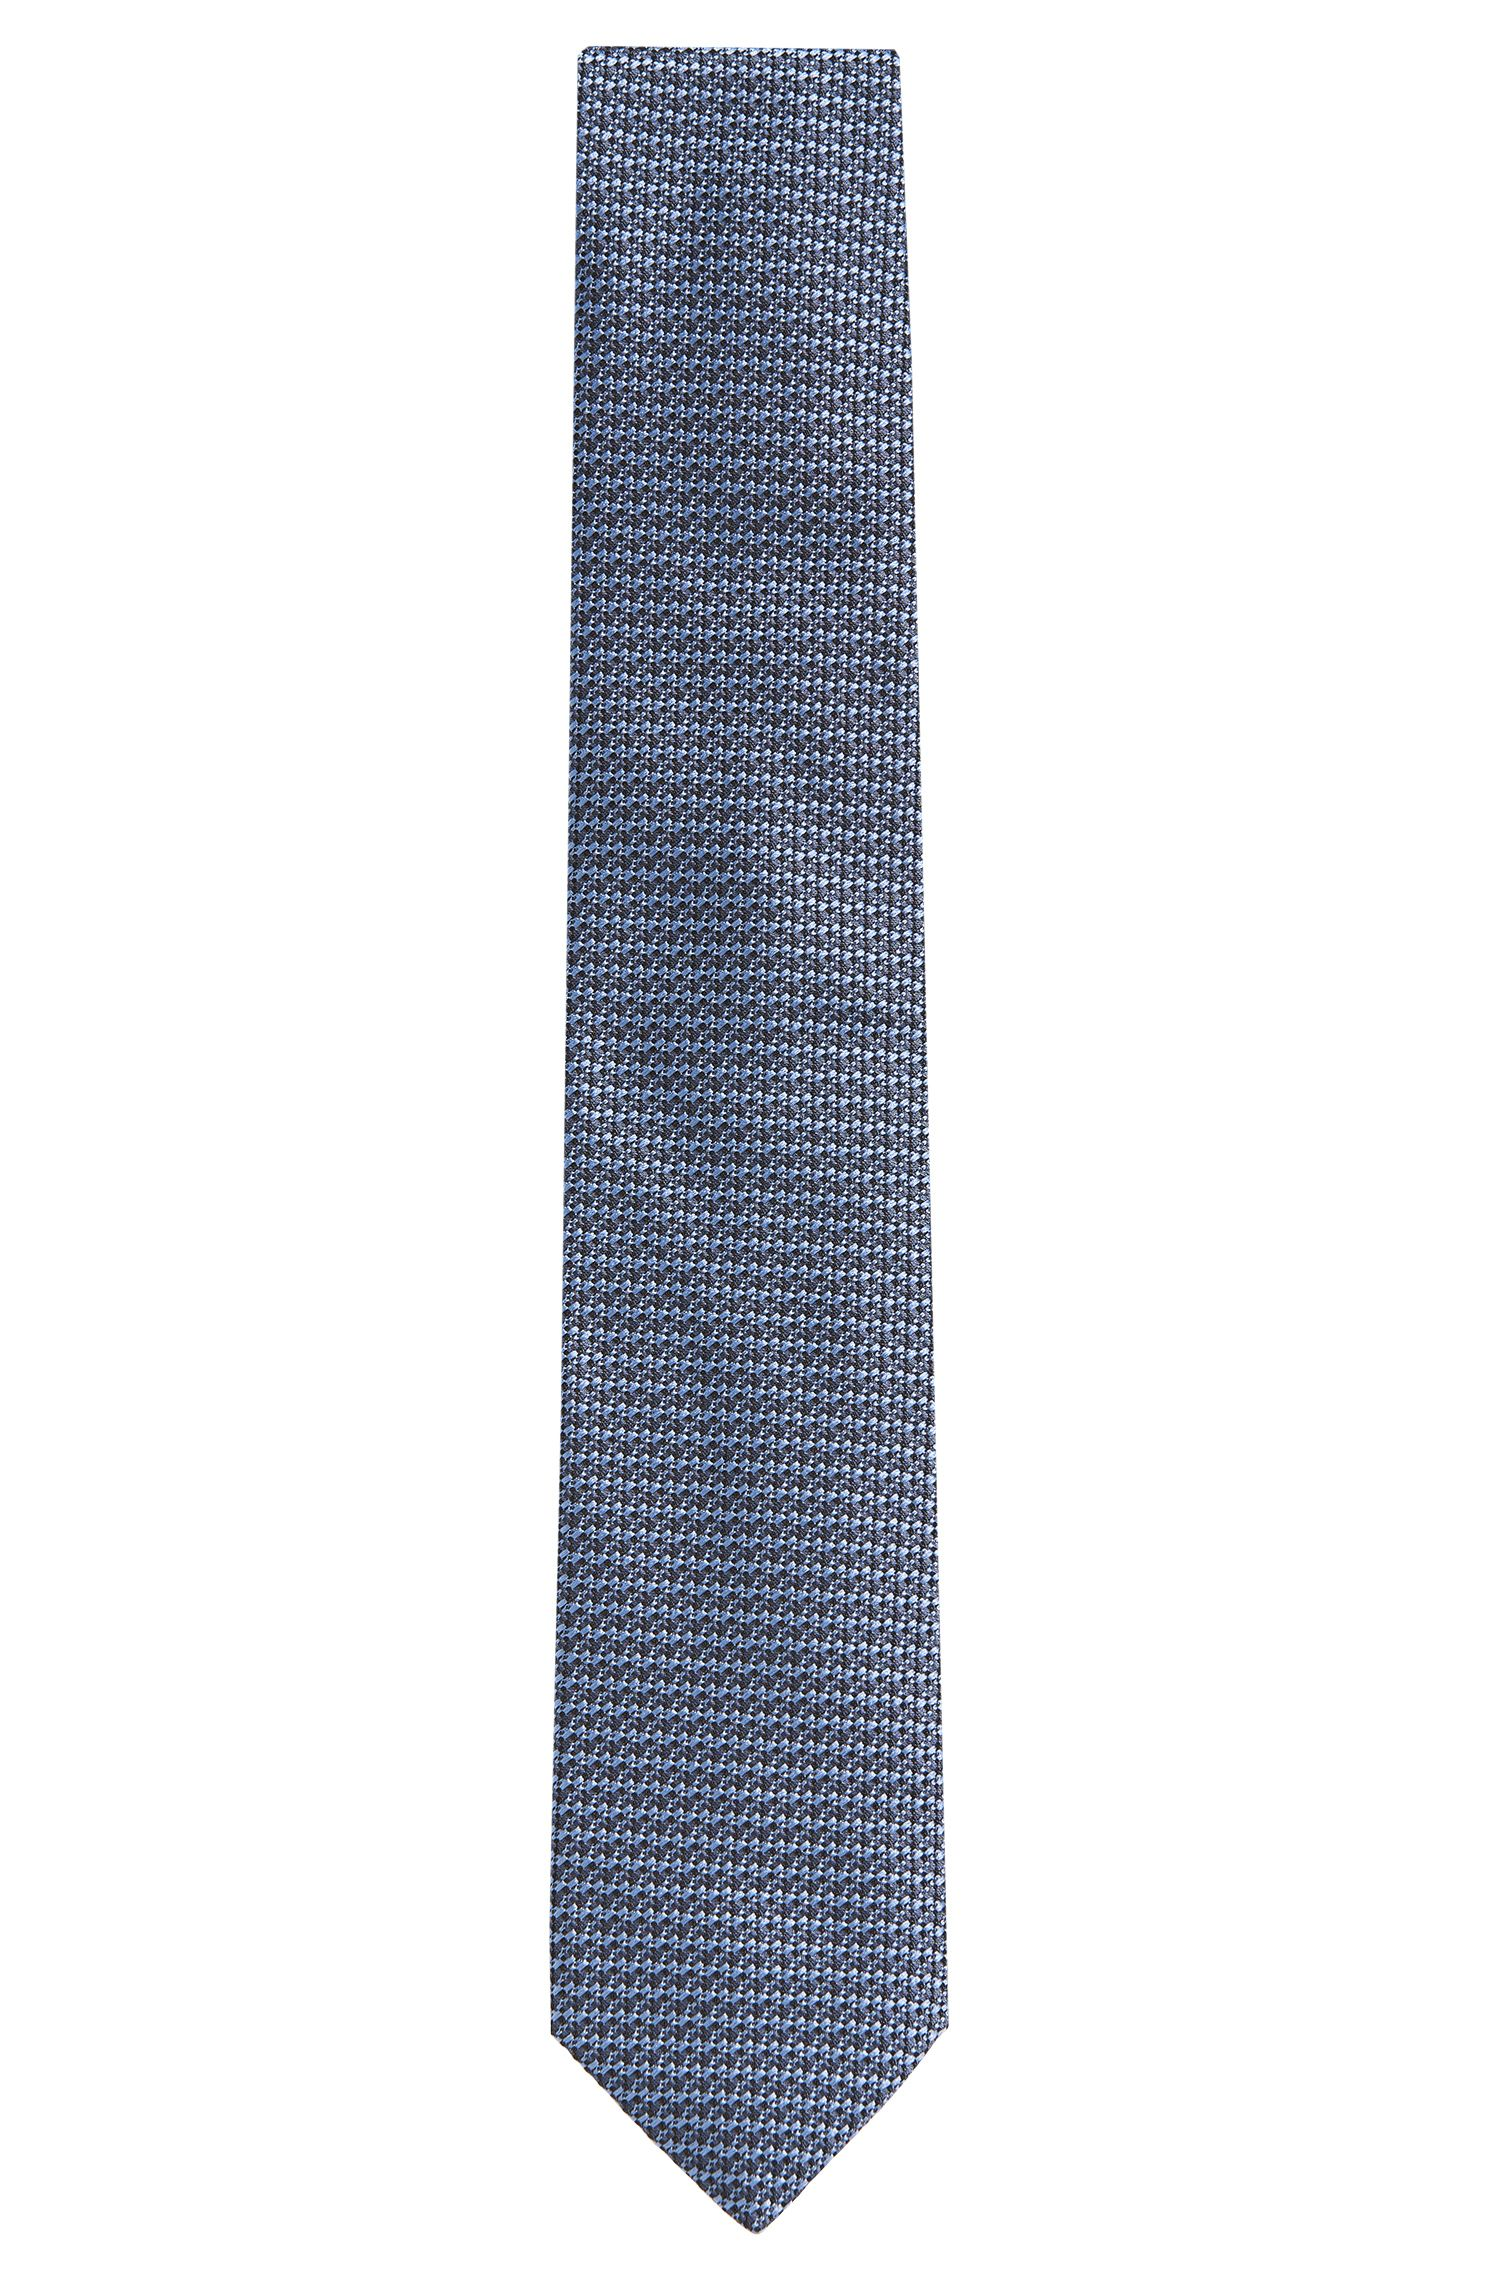 'Tie 7 cm' | Regular, Italian Silk Embroidered Tie